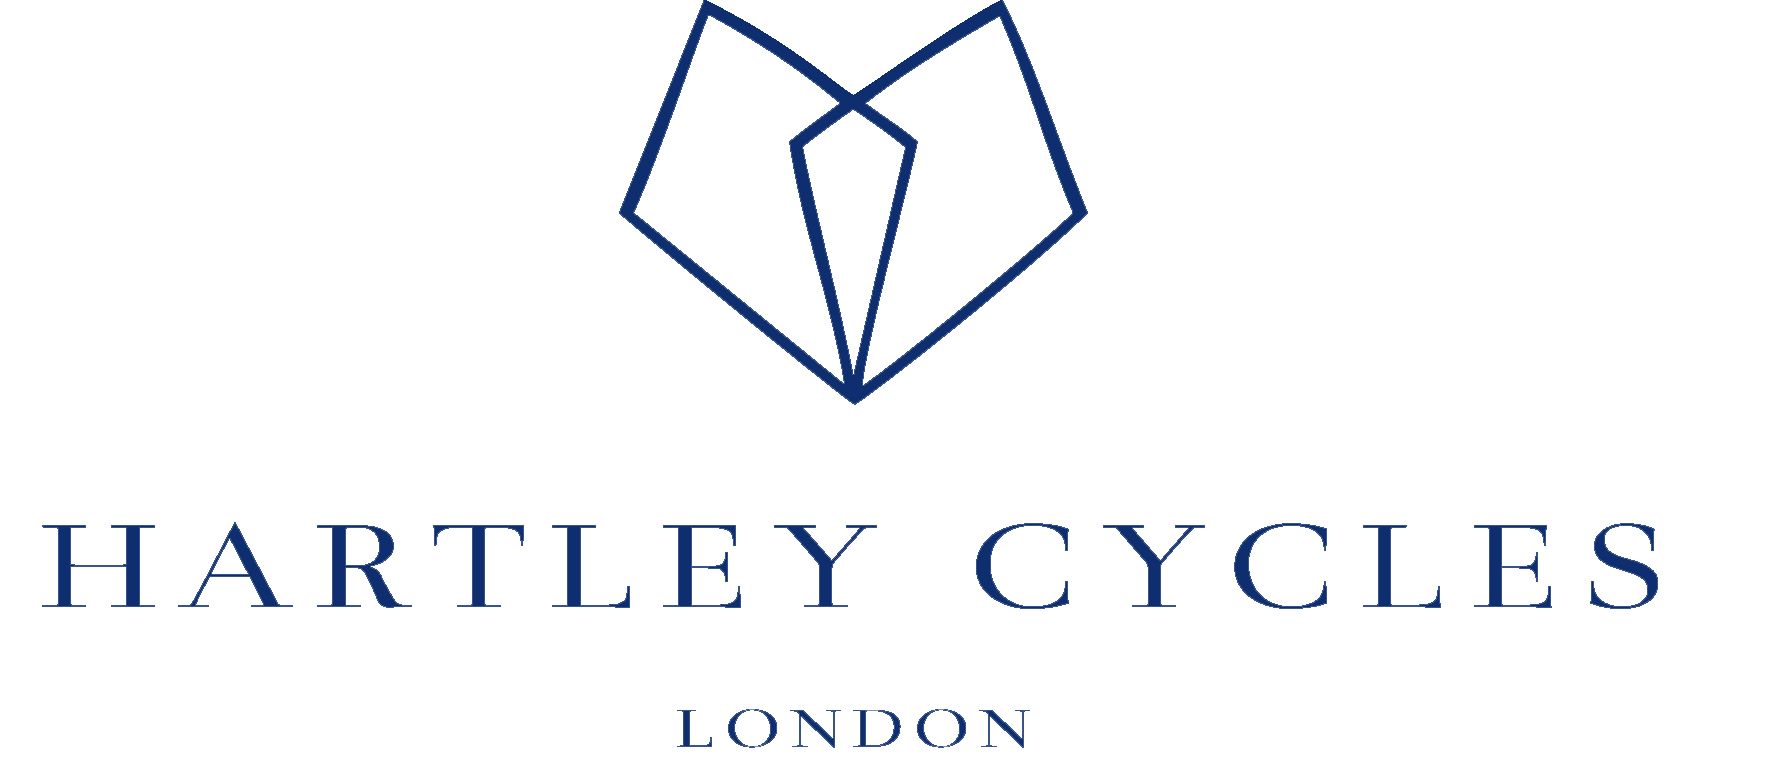 Hartley Cycles London logo.jpg